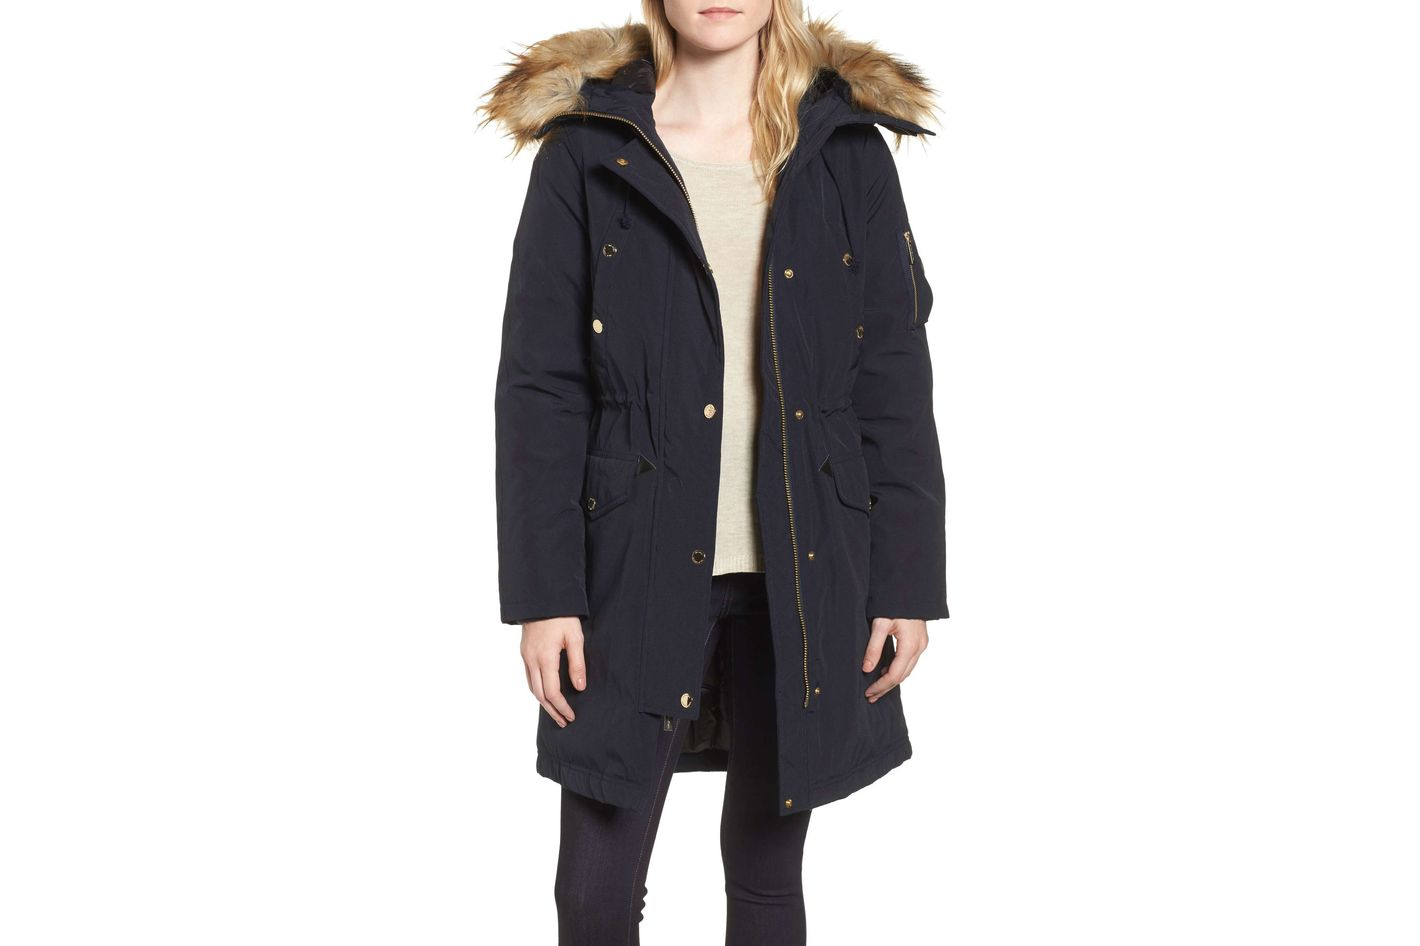 aa7f72b34f91 After-Christmas Sale  Nordstrom Winter Coats 2017